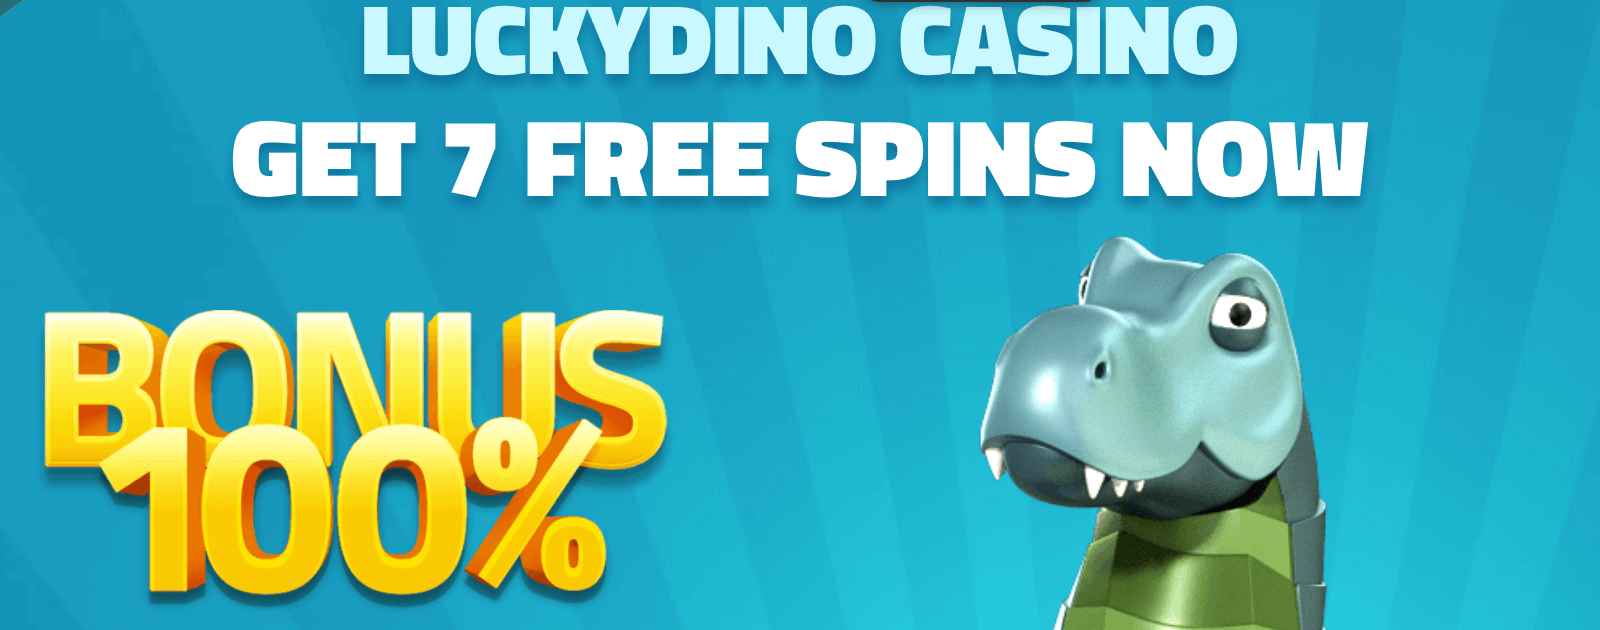 ★ 7 No Deposit Spins + C$400 + 100 Free Spins Welcome Package at LuckyDino Casino